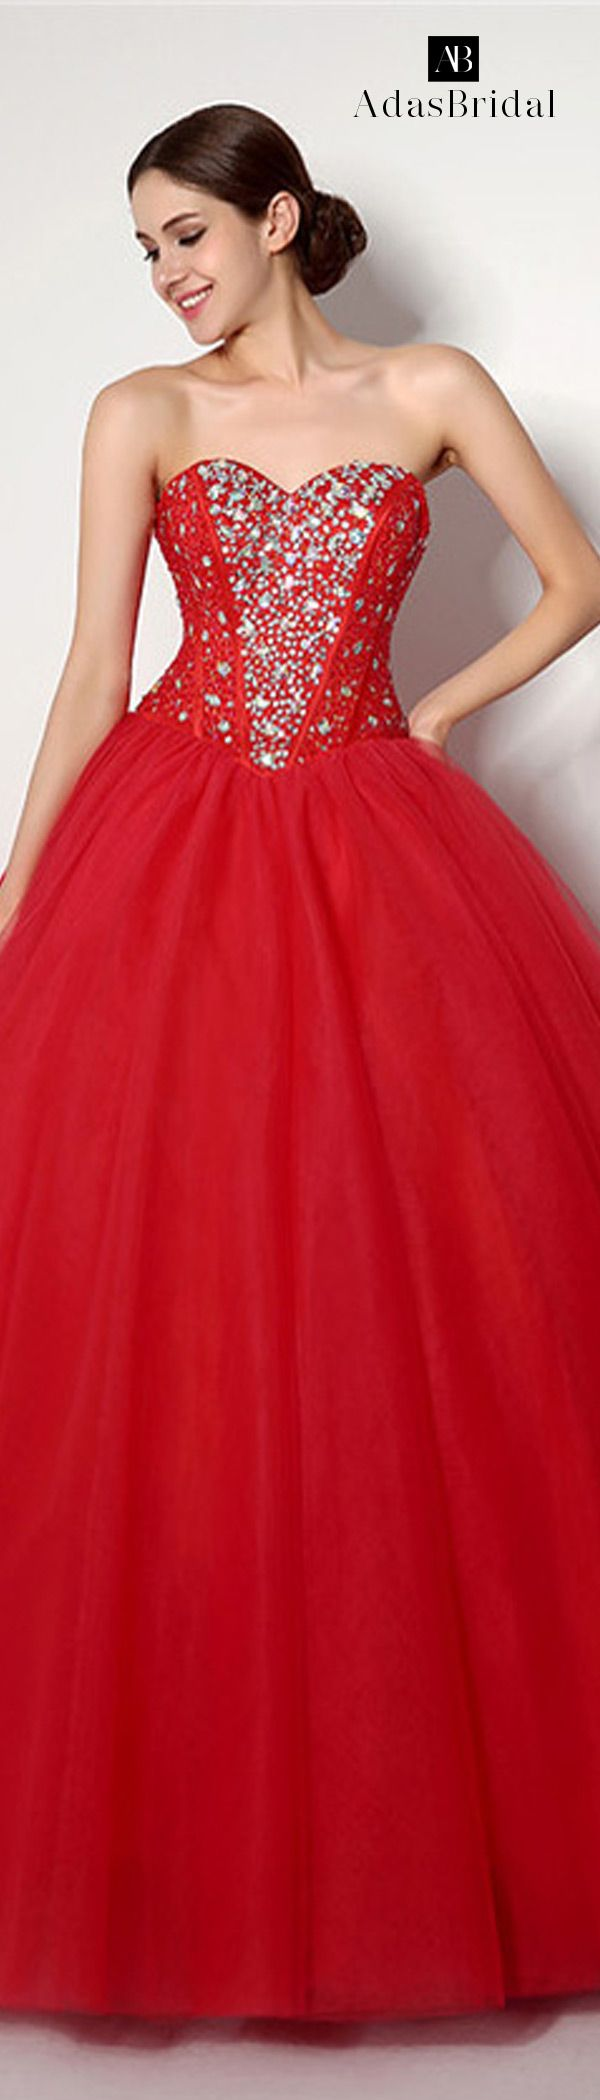 Red tone Sparkle & Shine floor-length Occasion Dresses (WWD70470)